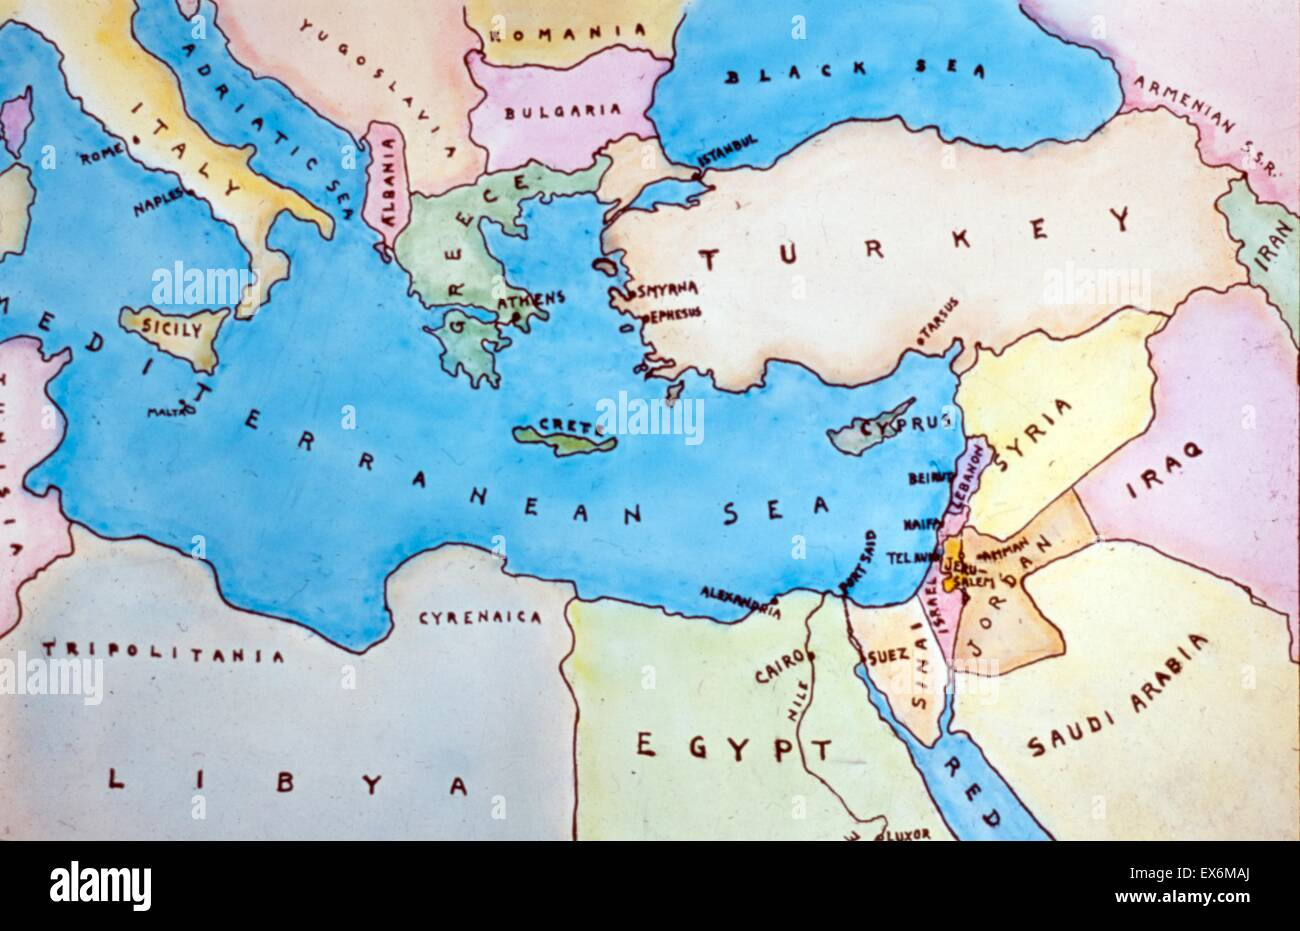 Map of the Eastern Mediterranean and surrounding countries. Dated 1977 - Stock Image